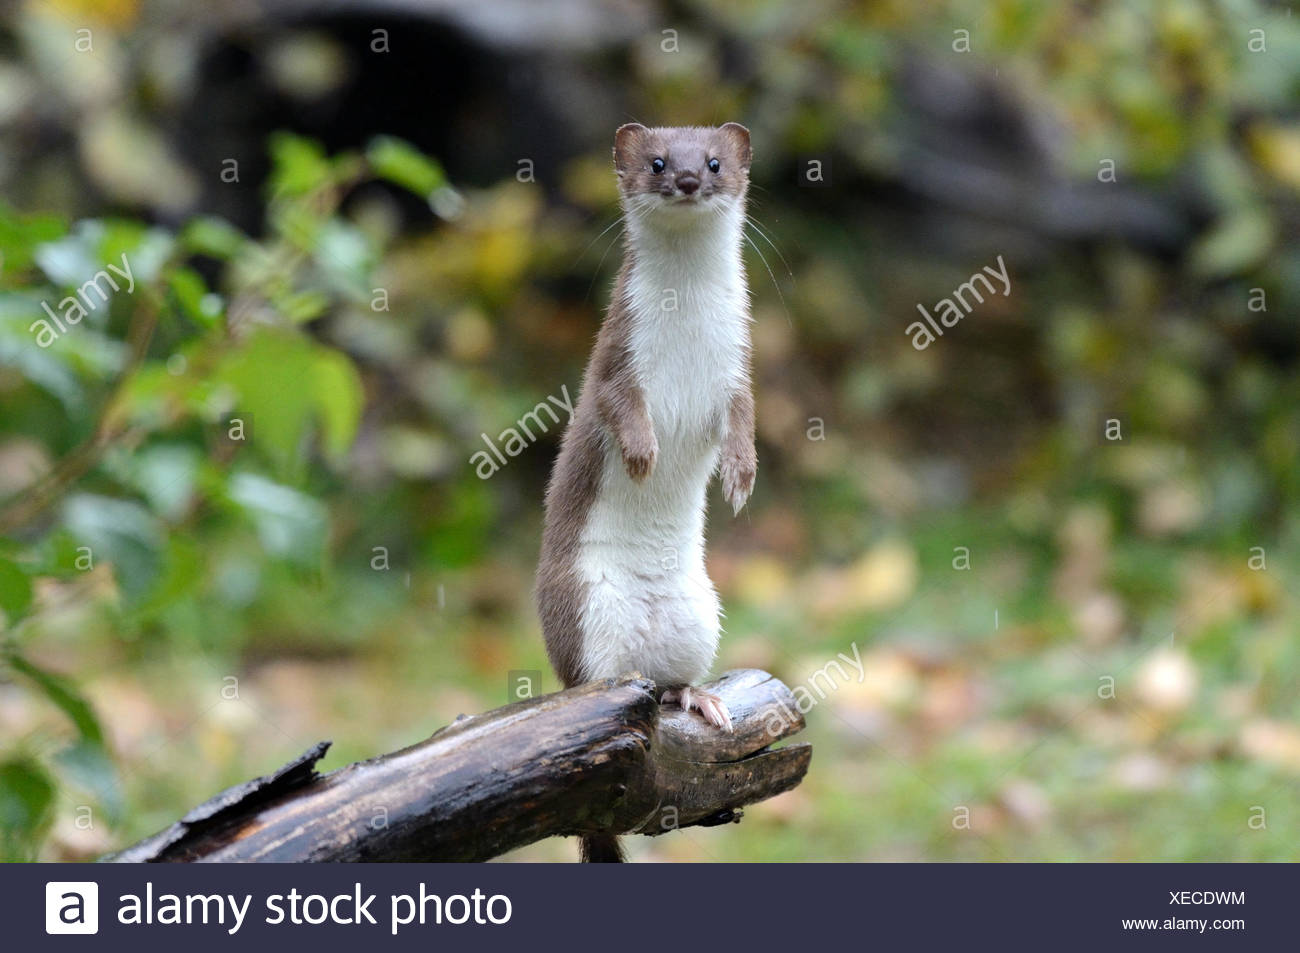 Ermine, animal, autumn, big weasel, short tail weasel, Mustela erminea, predator, canids, martens, mustelidae, Endemical, wild an - Stock Image